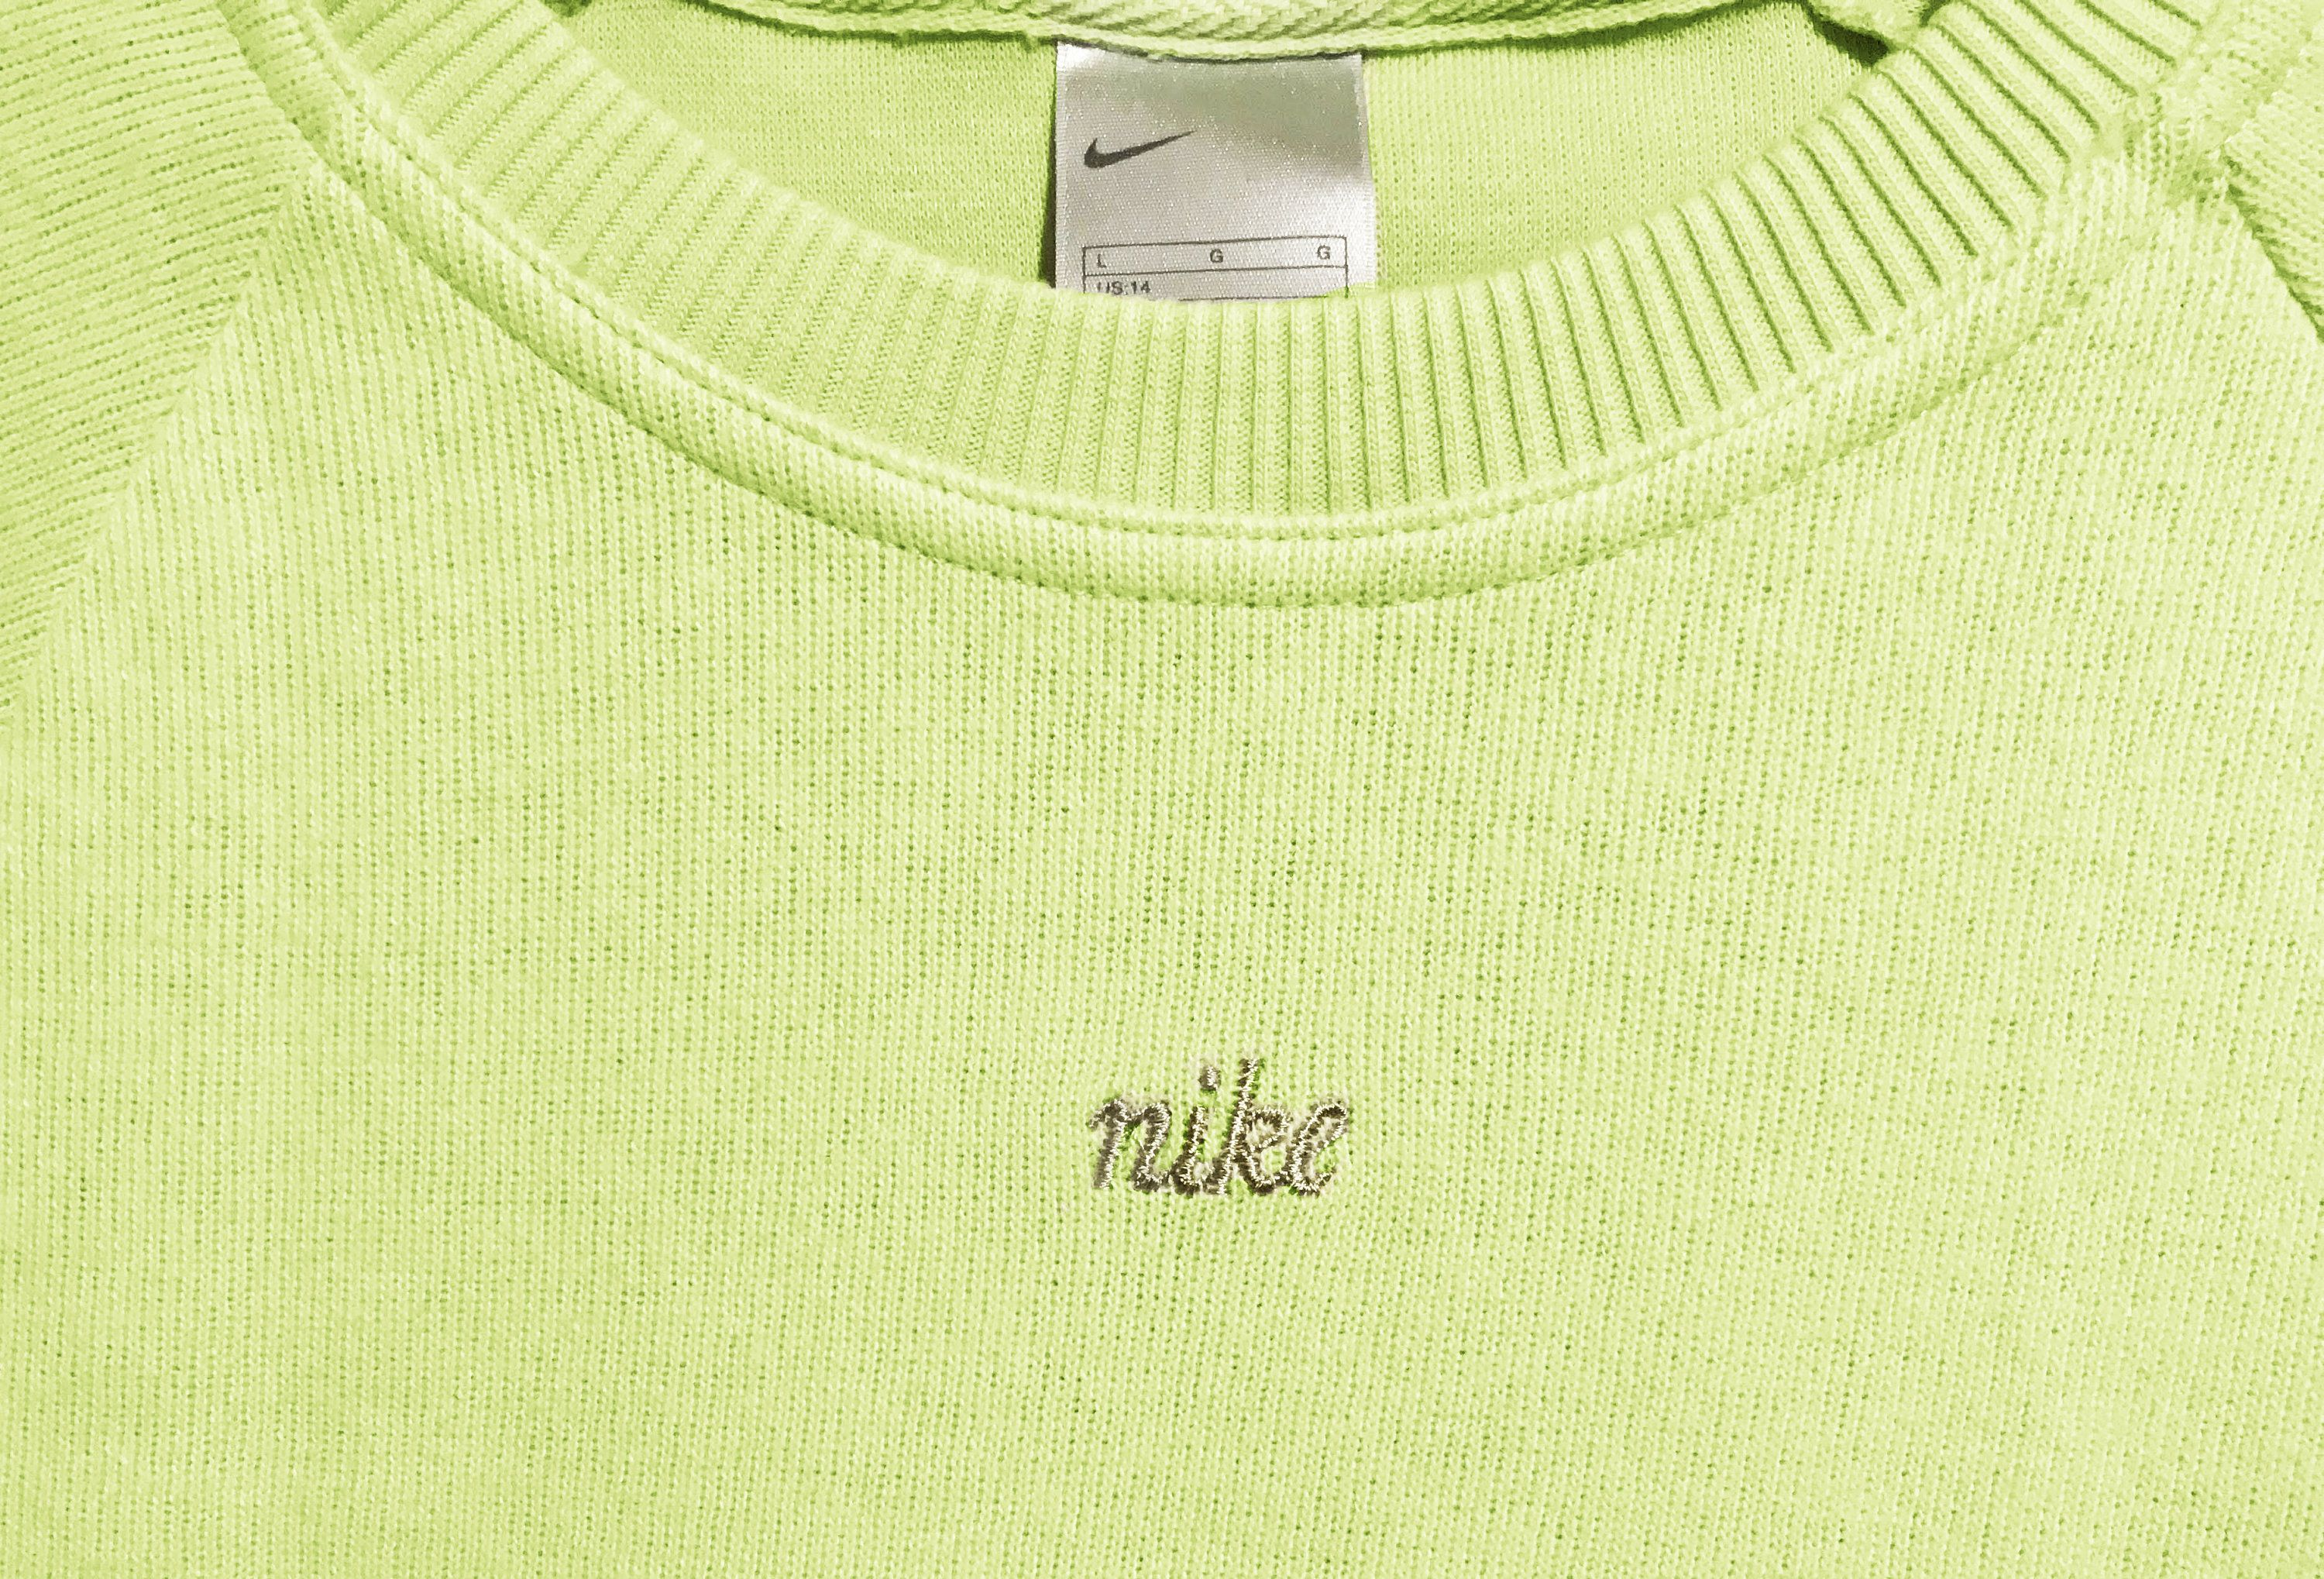 Vintage 90s Nike Spell Out Logo Swoosh Sweatshirt Green Size S New With Tags Sweatshirts Nike Vintage Nike [ 2038 x 3000 Pixel ]